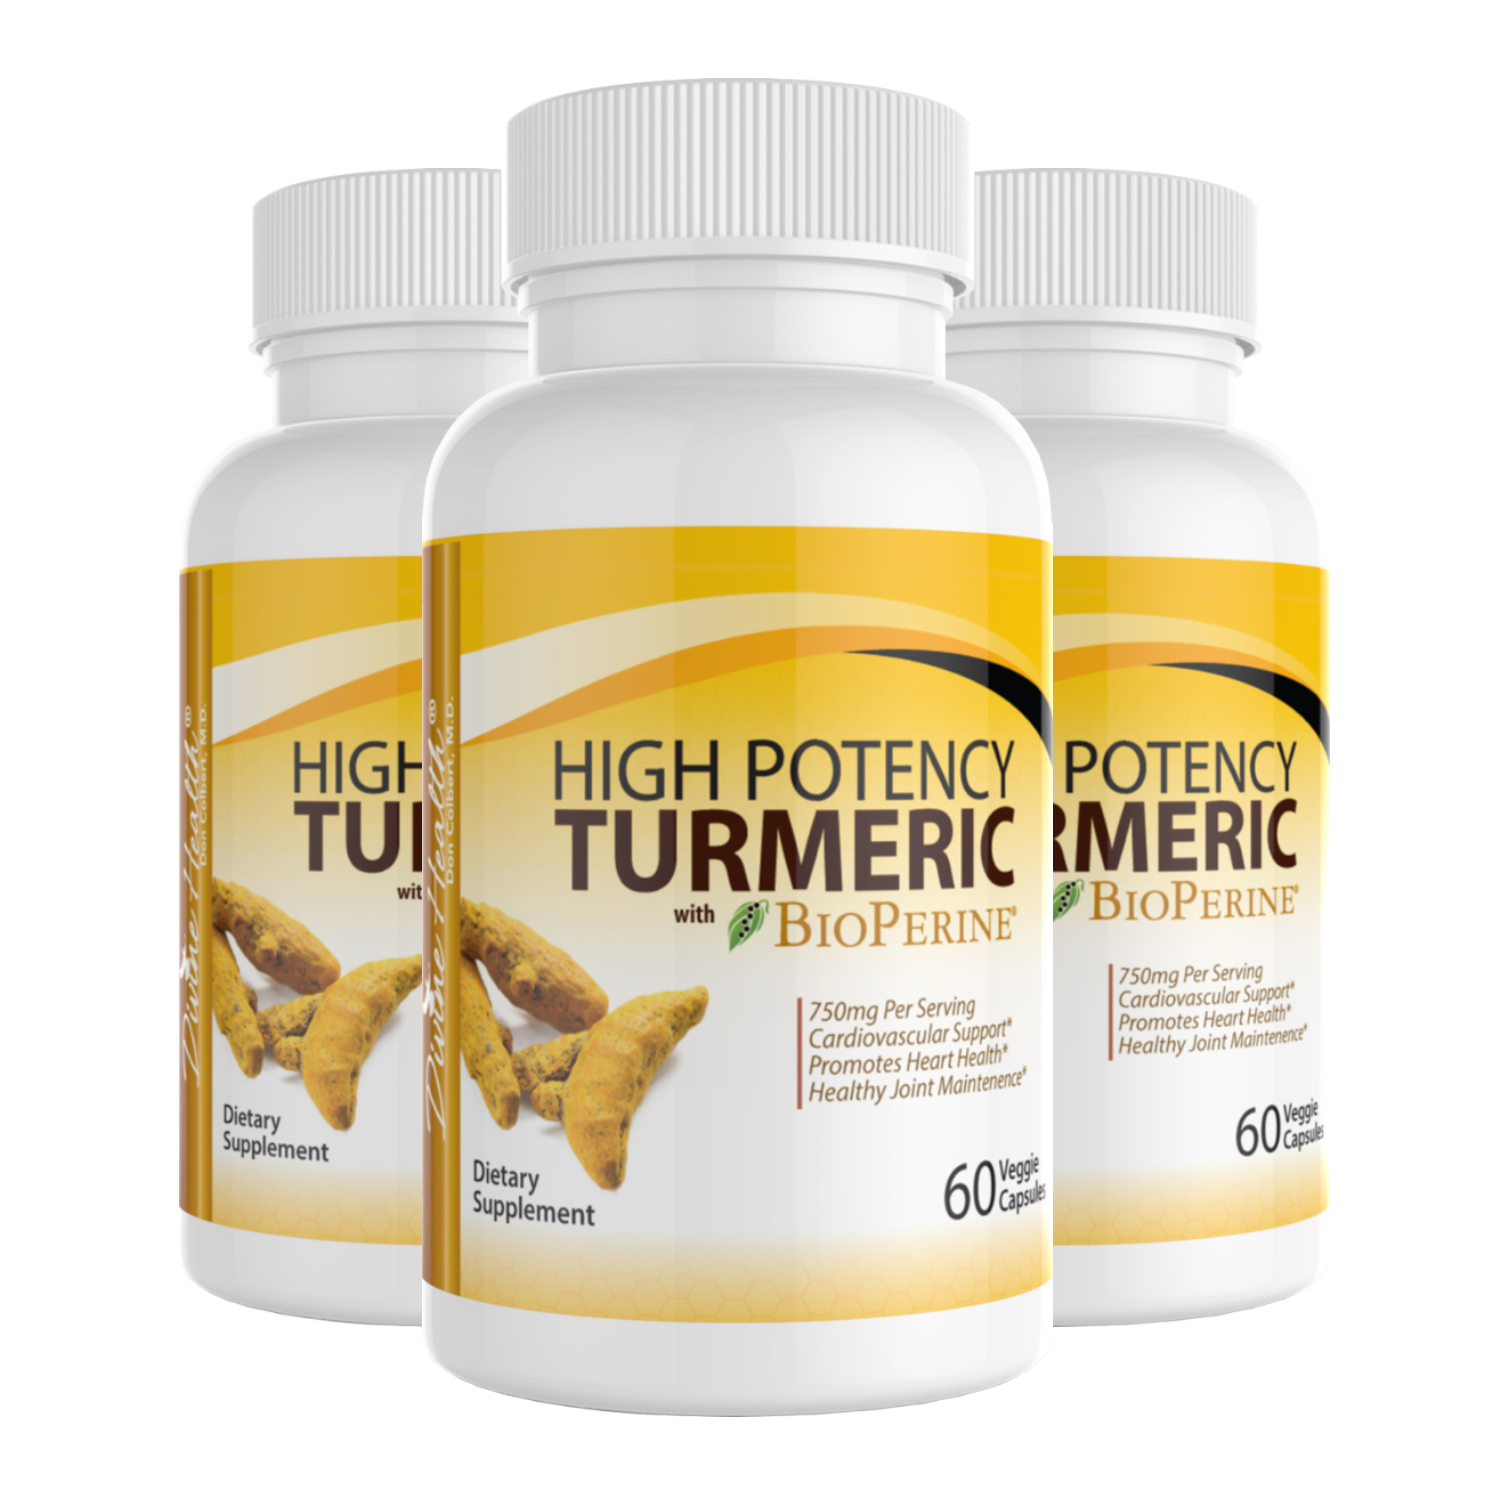 High Potency Turmeric With Bioperine (90 Day Supply)